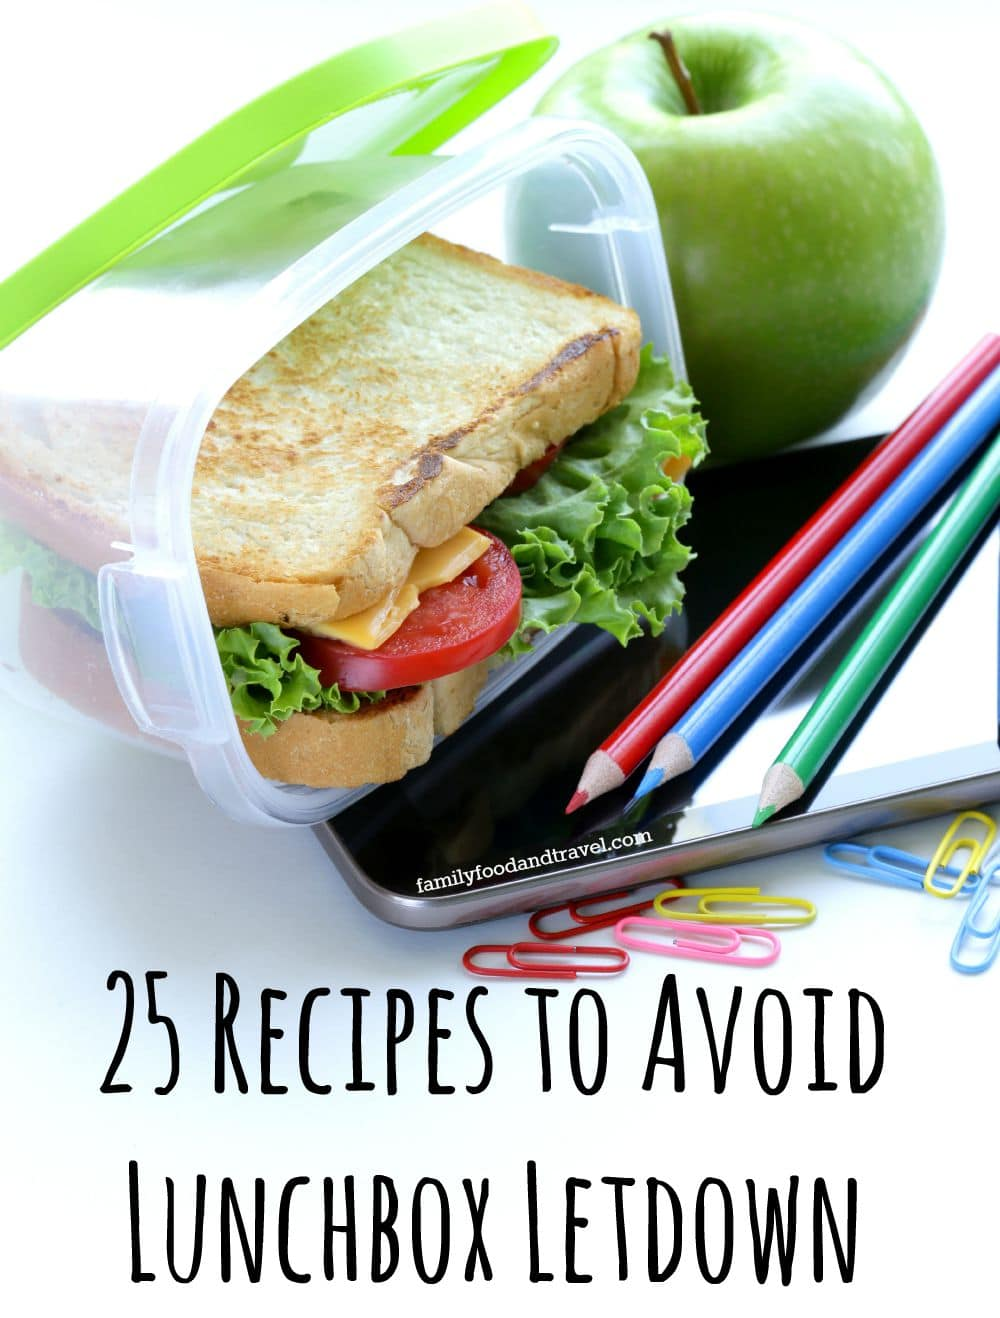 Recipes to Avoid Lunchbox Letdown